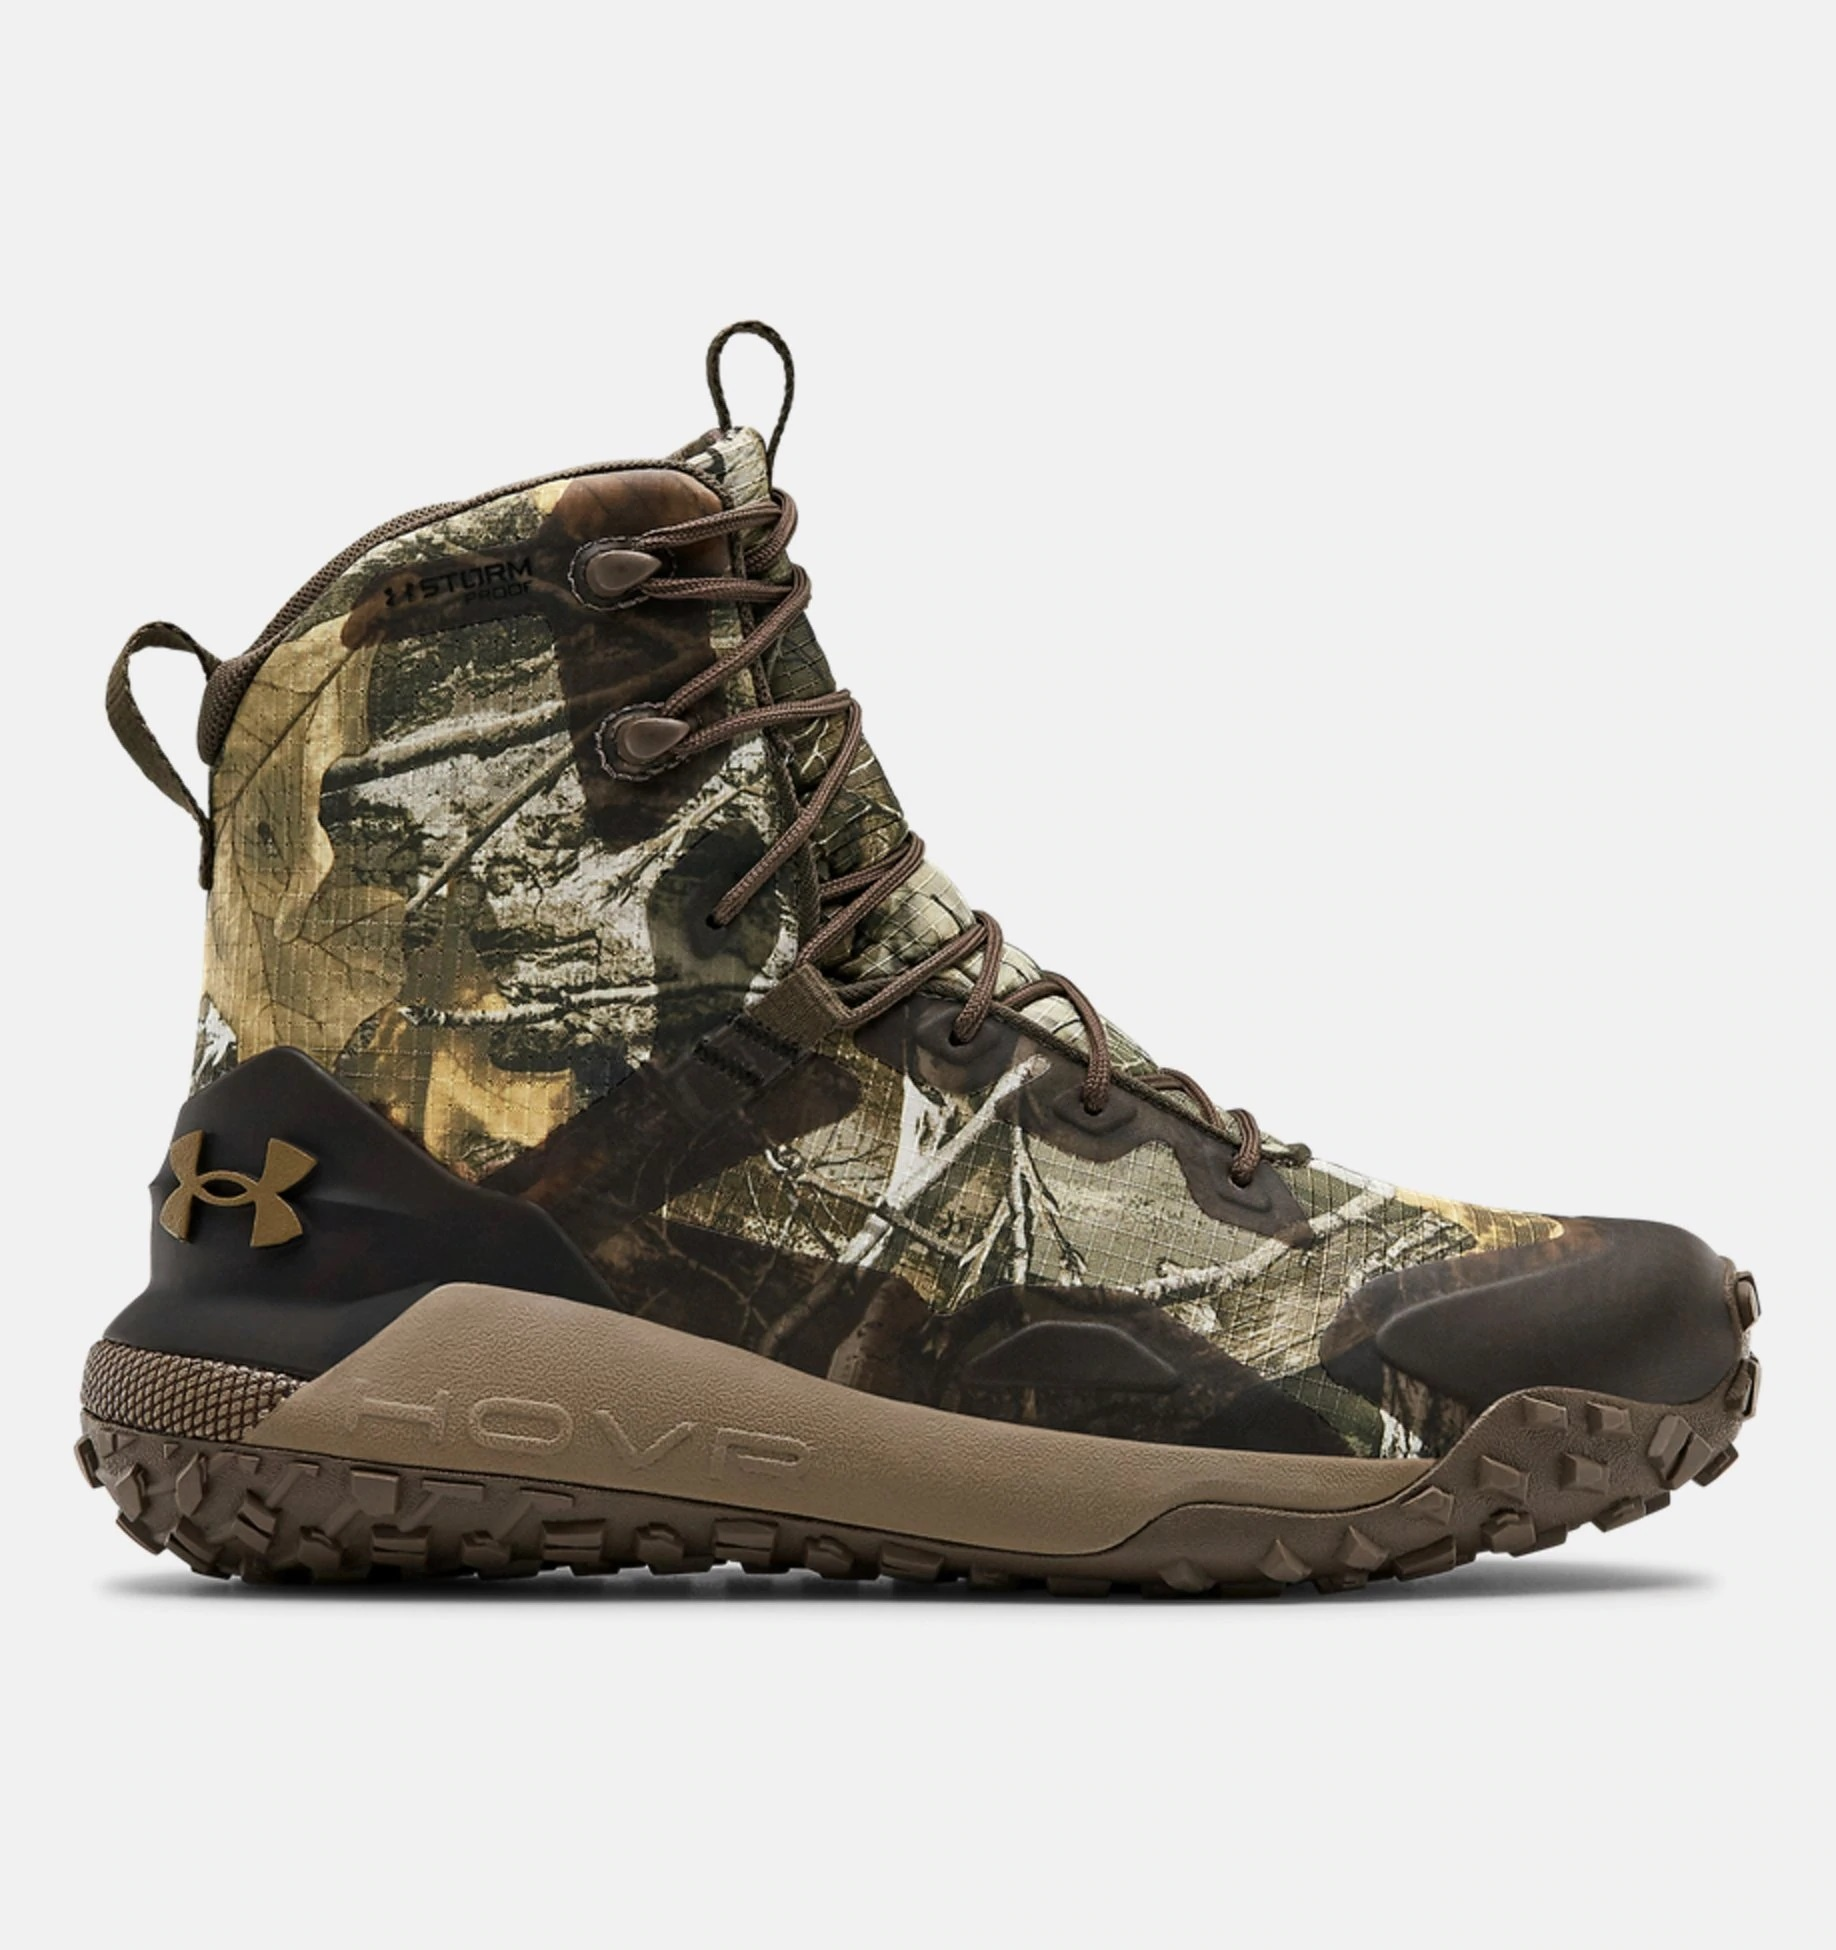 innovación Interior Paine Gillic  Under Armour Unisex UA HOVR Dawn WP 400G Boots - Triggers and Bows